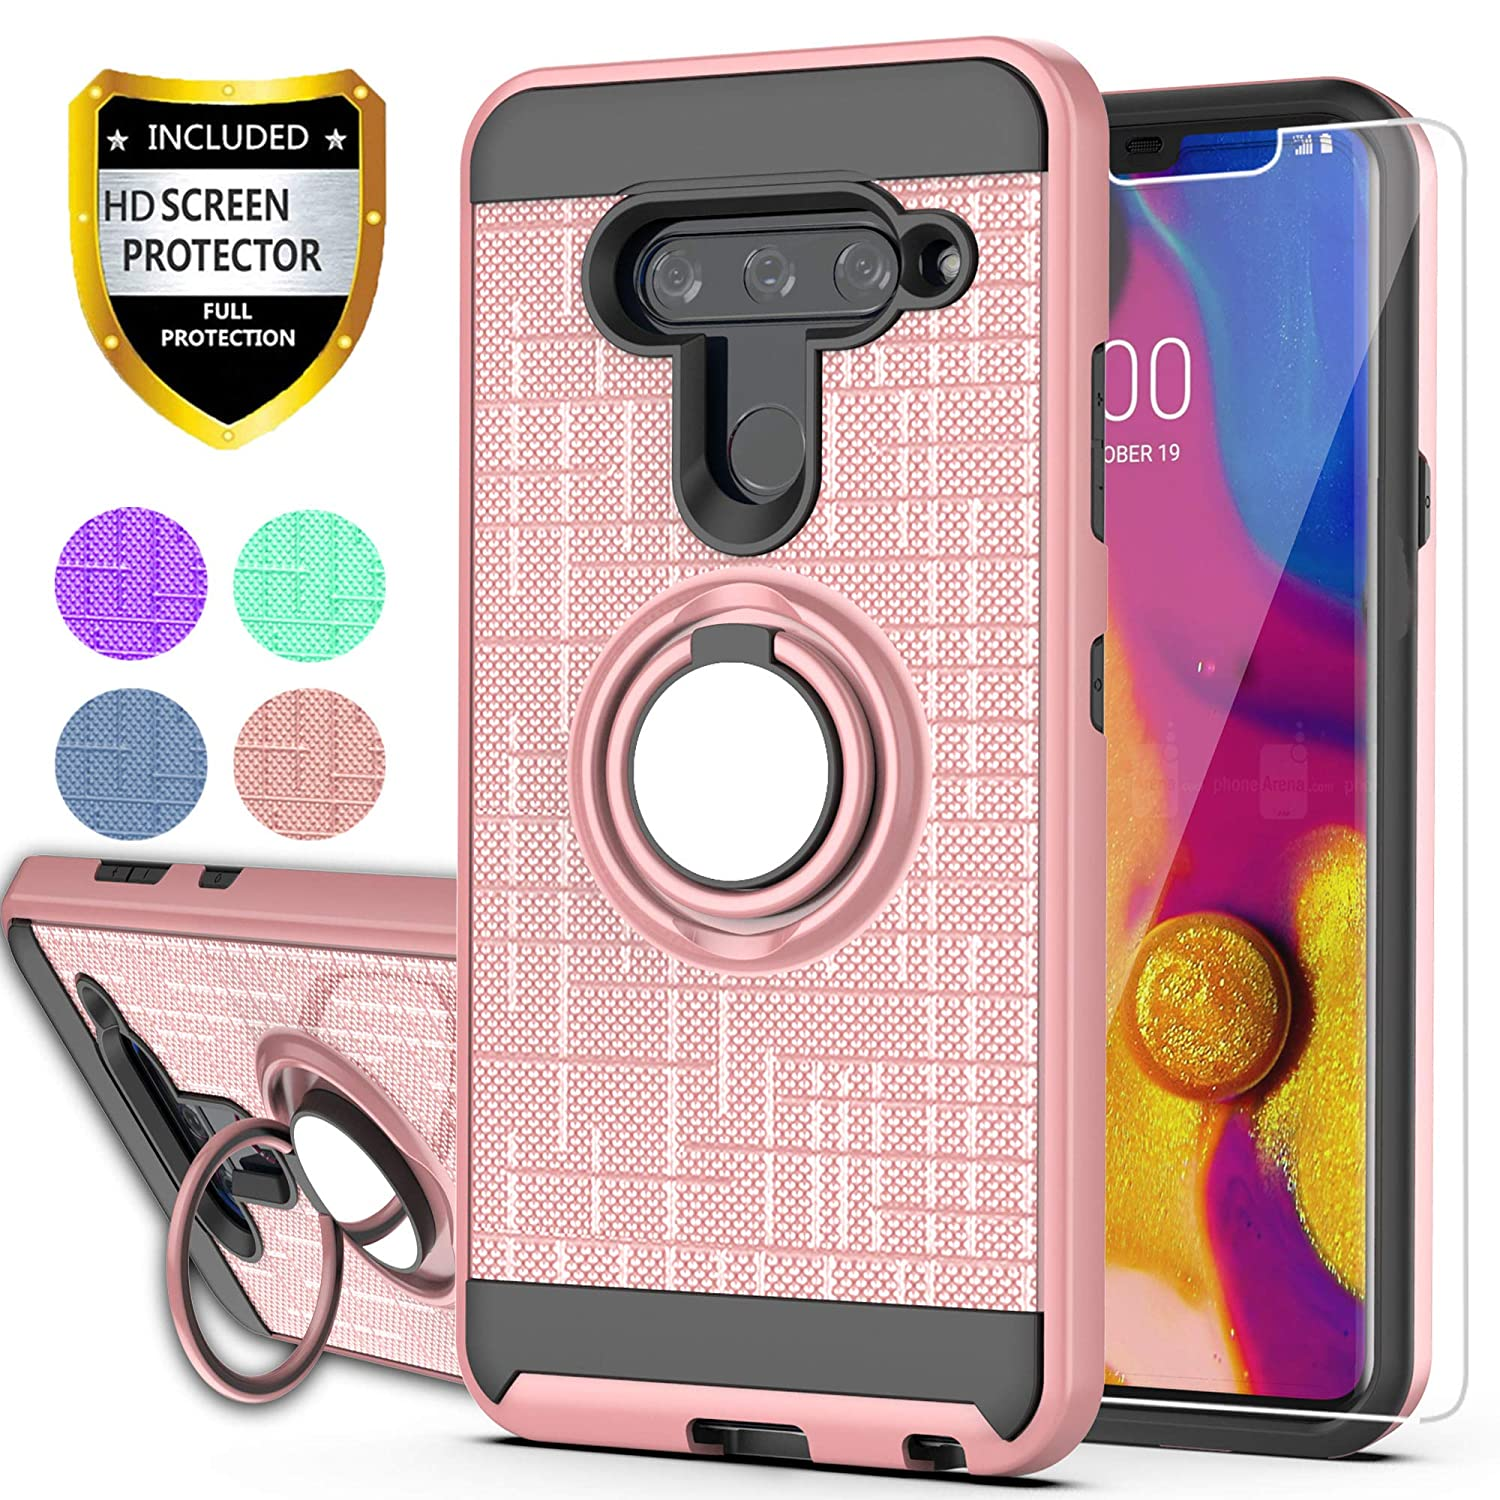 YmhxcY LG V40 ThinQ Phone Case,LG V40 Cases with HD Phone Screen Protector, 360 Degree Rotating Ring & Bracket Dual Layer Resistant Back Cover for LG V40-ZH Rose Gold